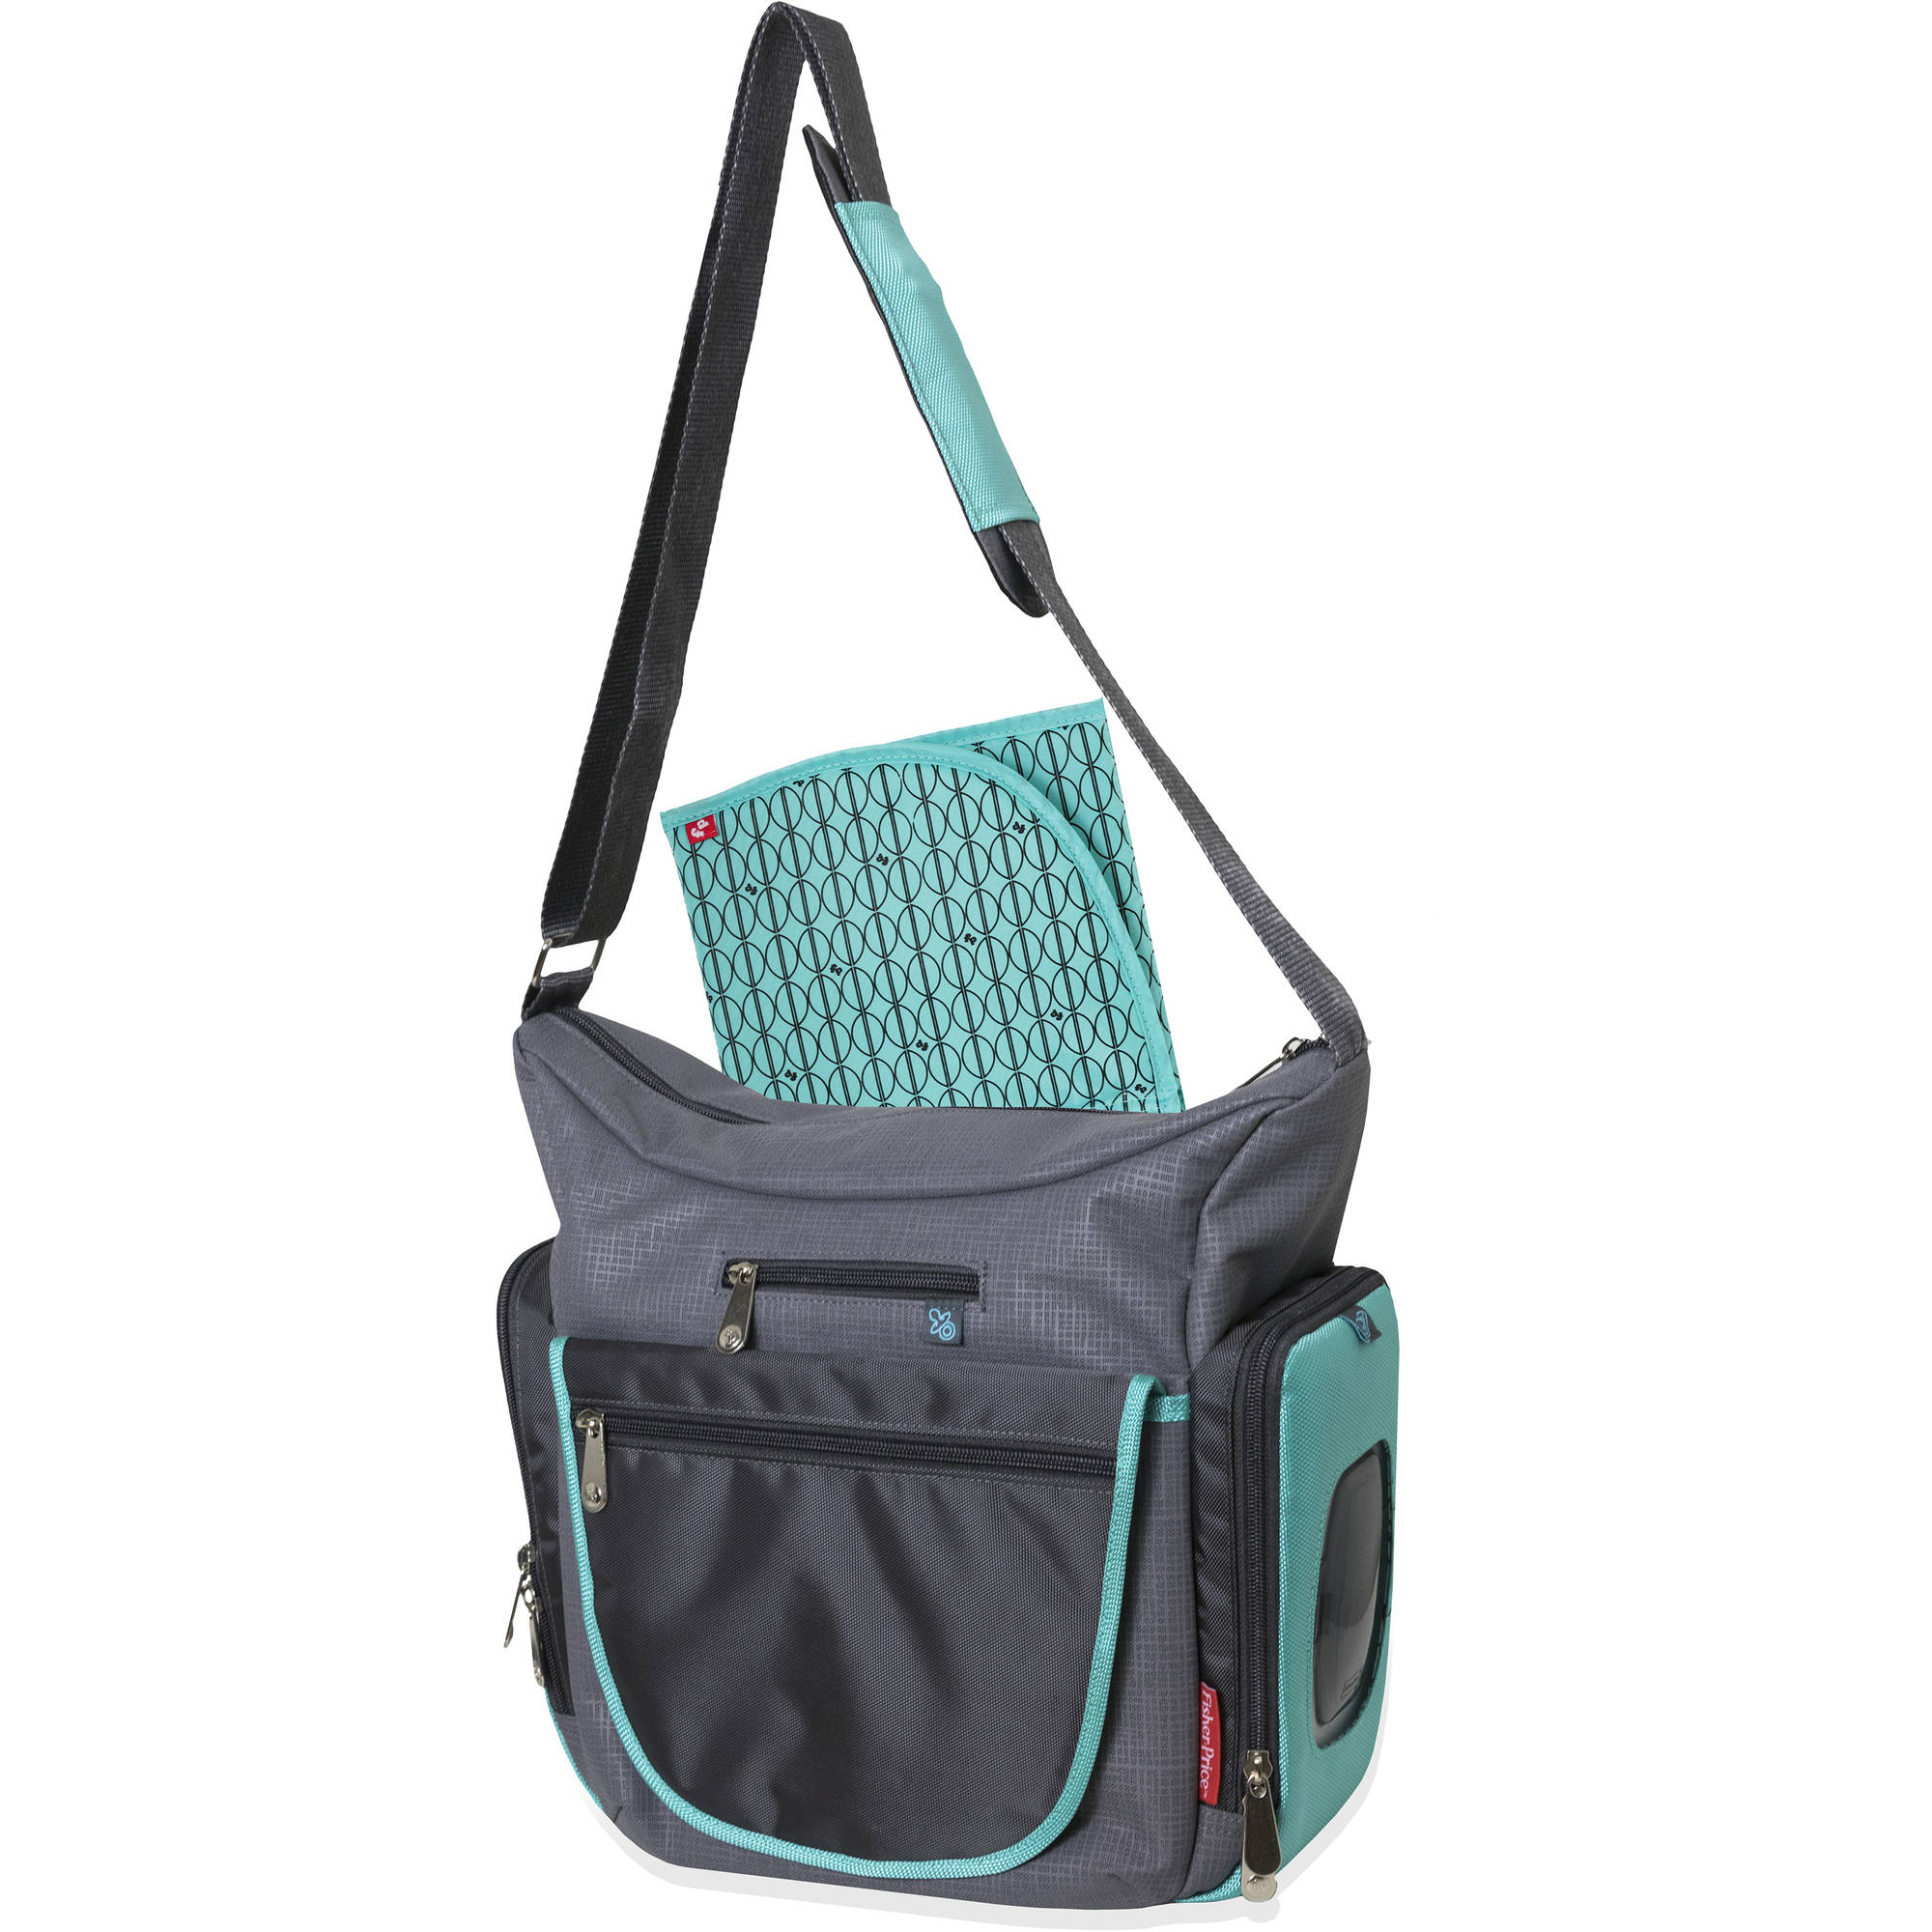 Fisher-Price Midsize Gray/Teal Hobo Bag